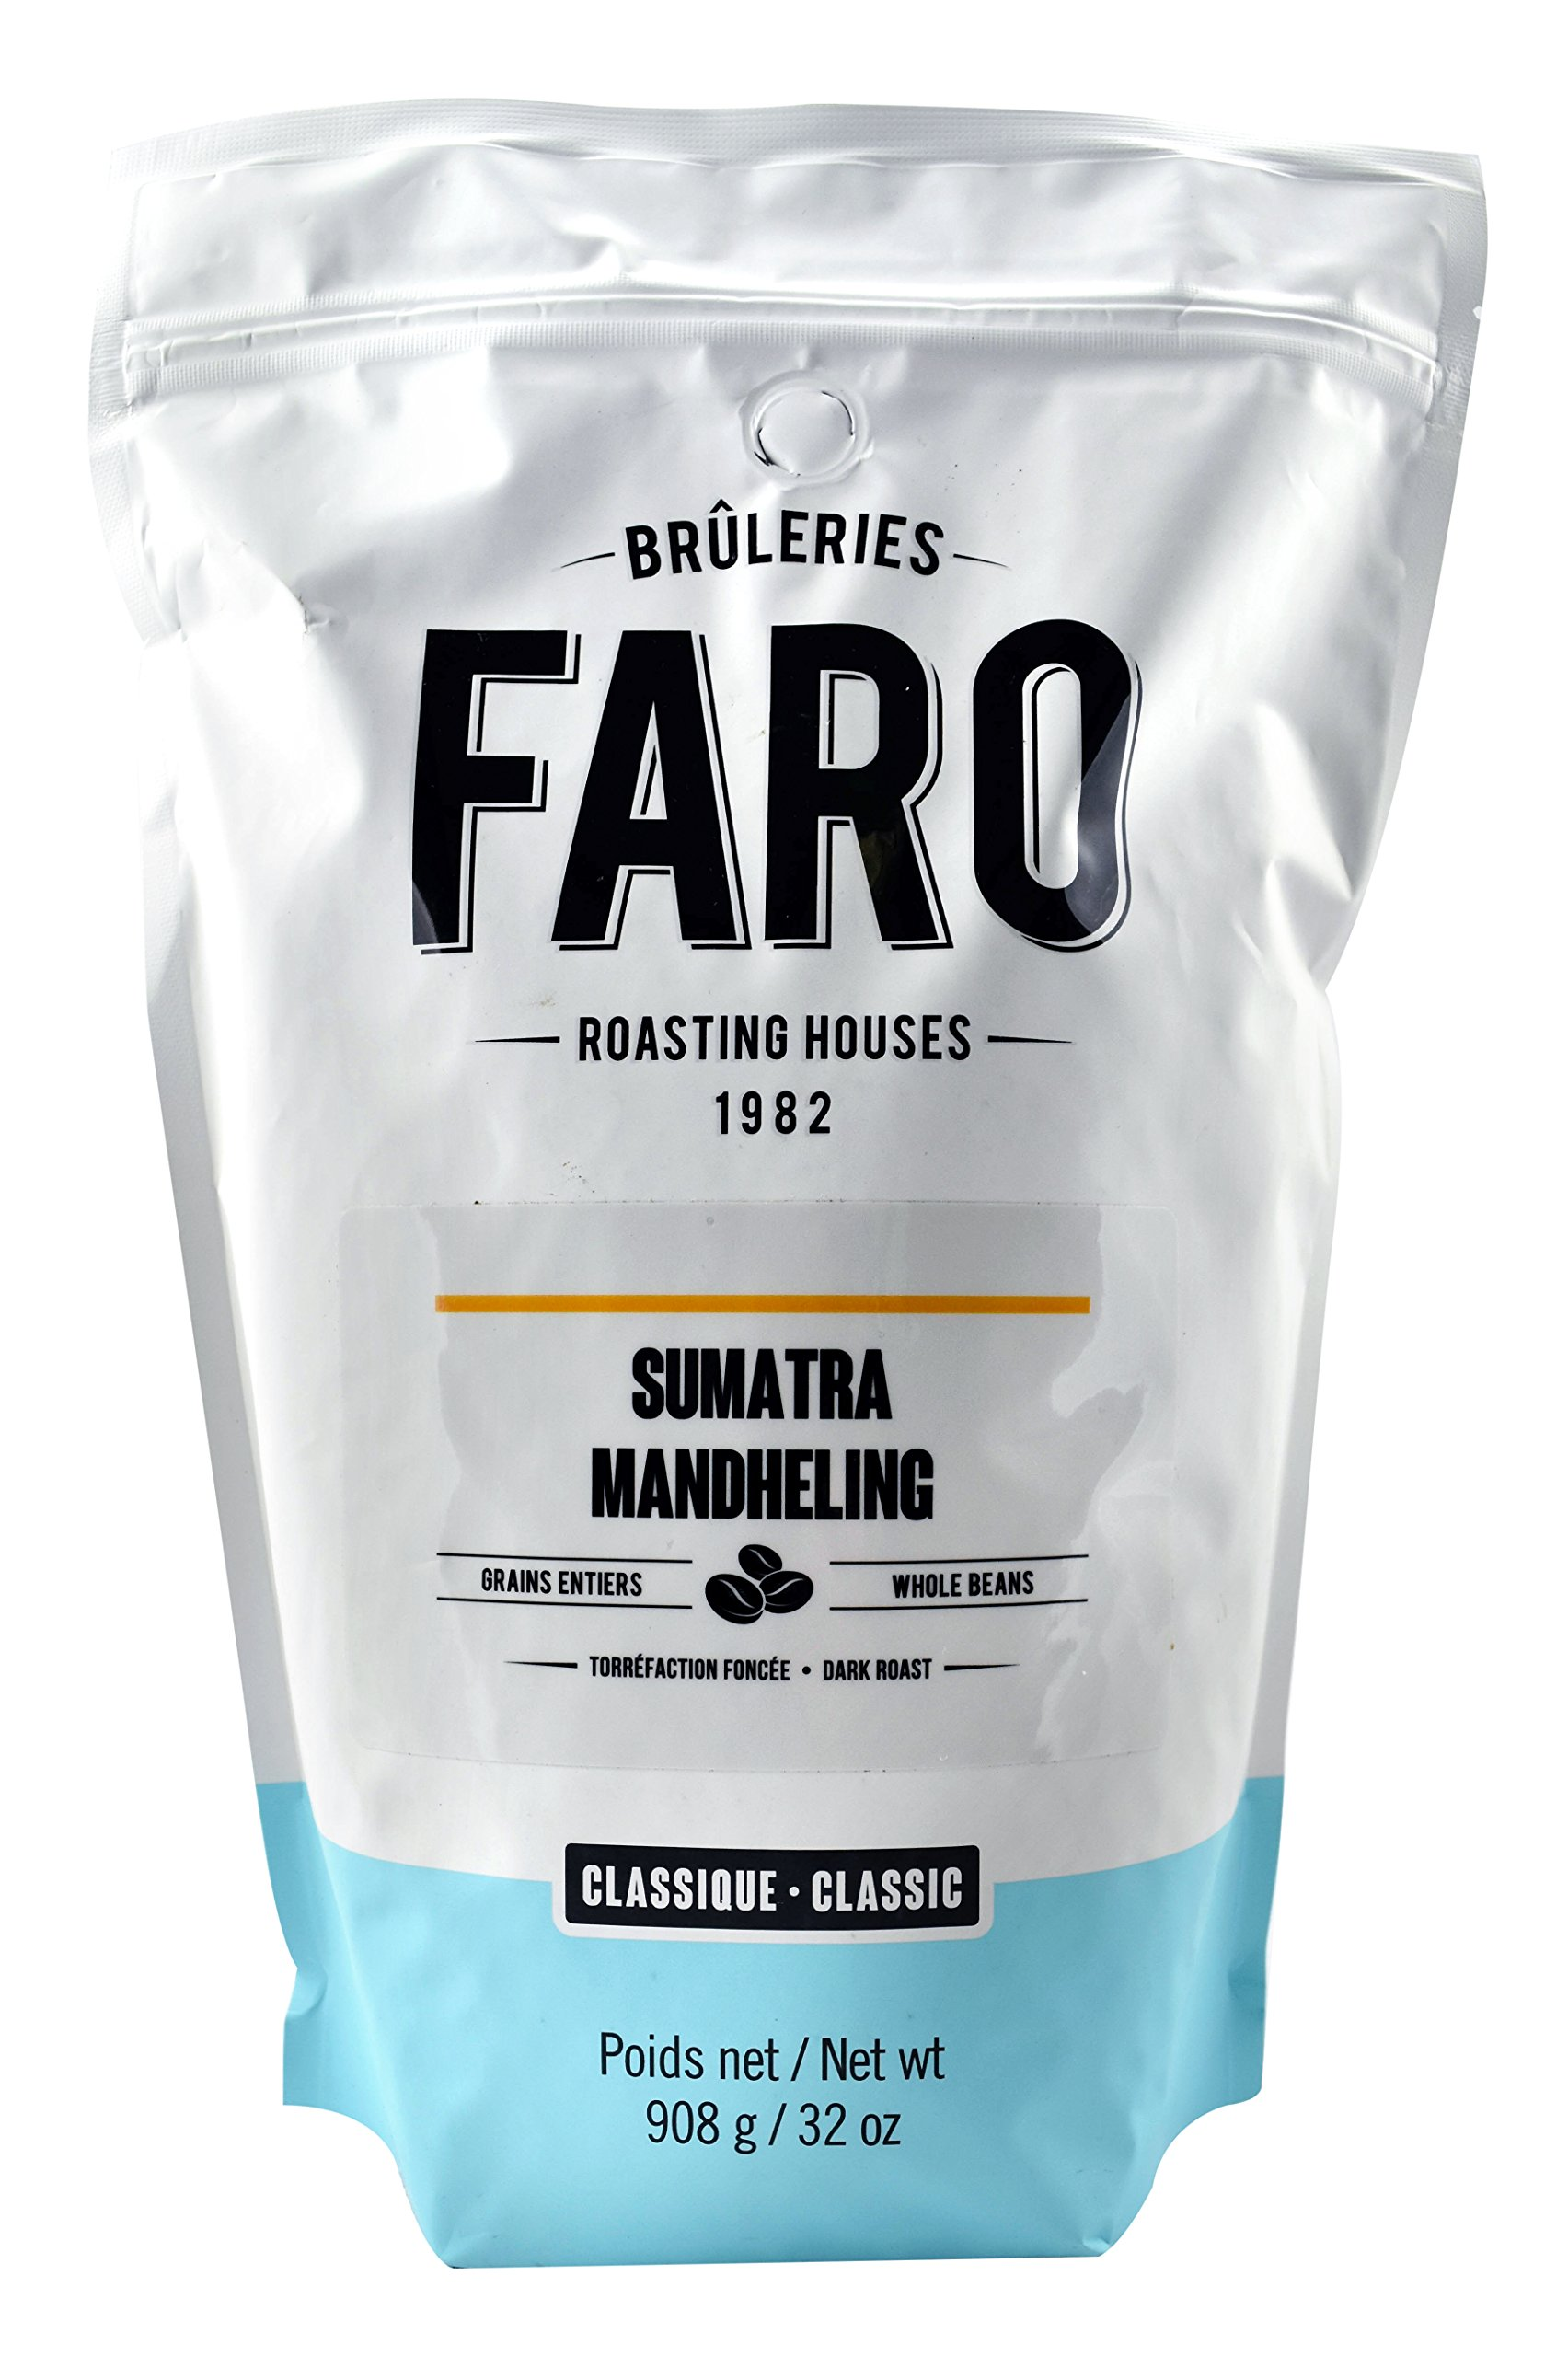 Faro Roasting House Sumatra Mandheling Whole Coffee Beans 2lb, 100% Arabica Beans - Whole Bean Coffee - Fresh Dark Roast Coffee Beans (2 Pound Bag)